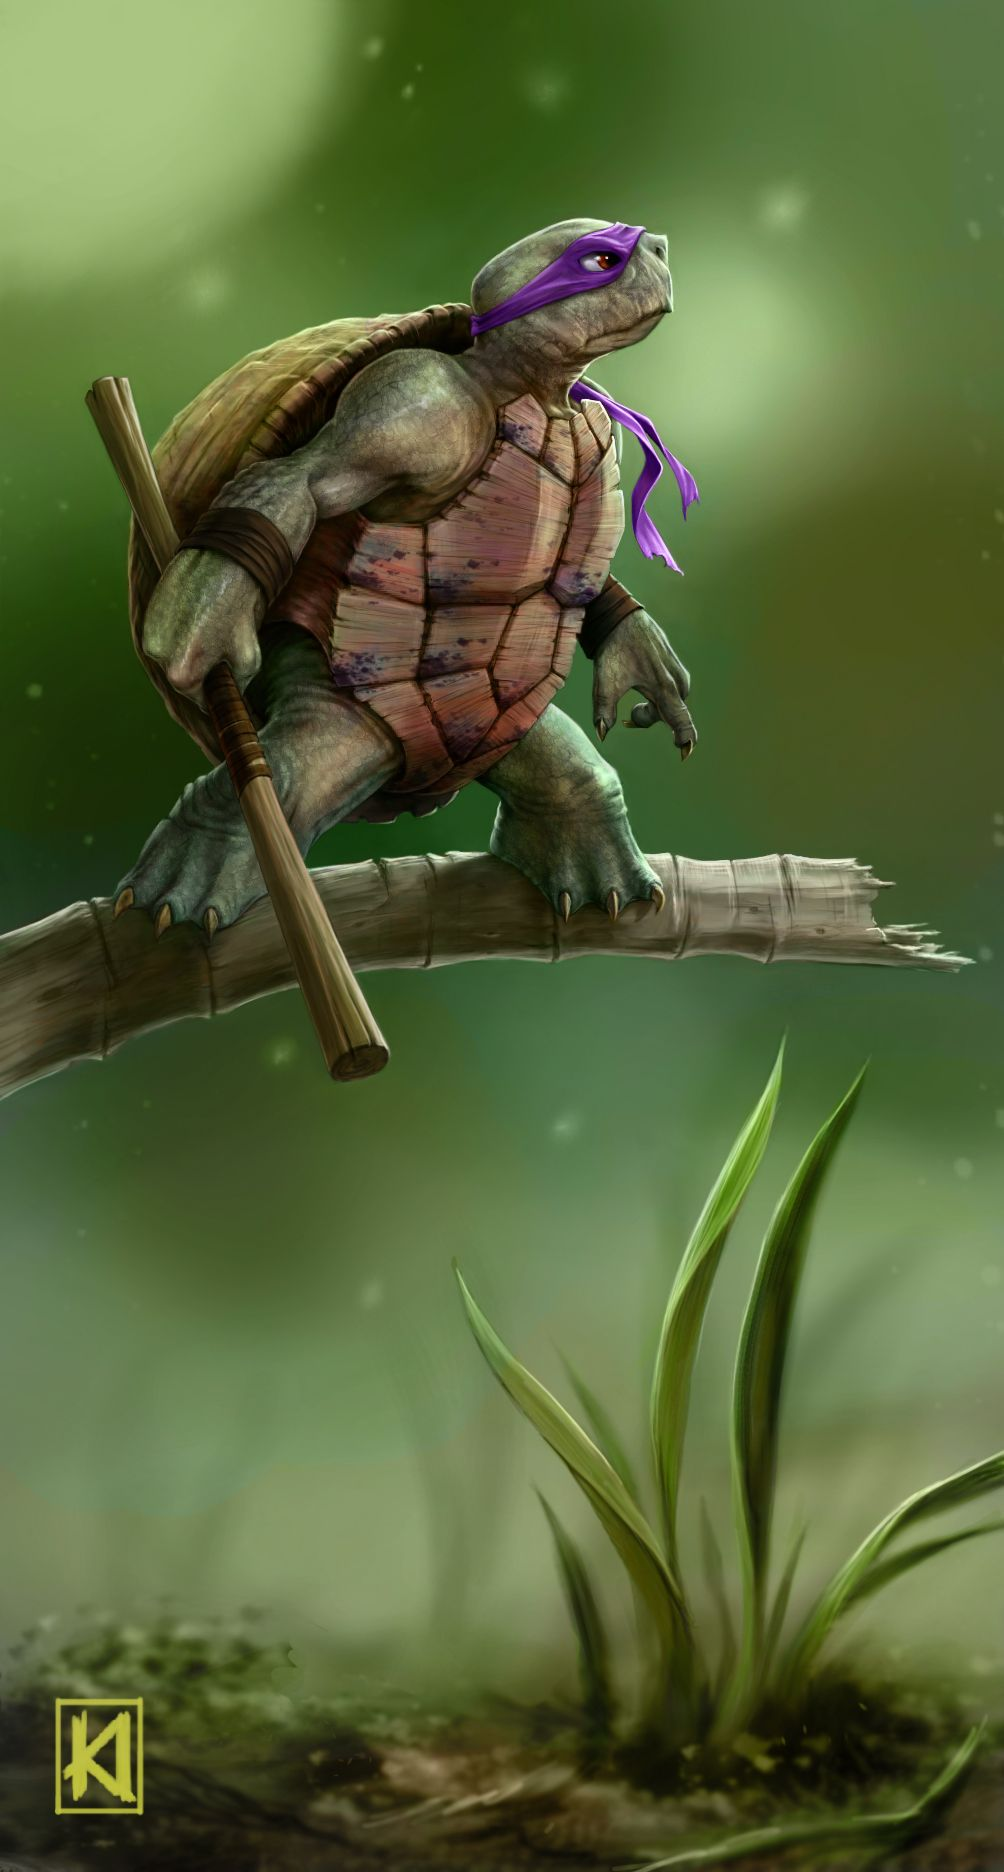 geeksngamers: TMNT: Turtle Power- by Kory... | Awesome Design Inspiration